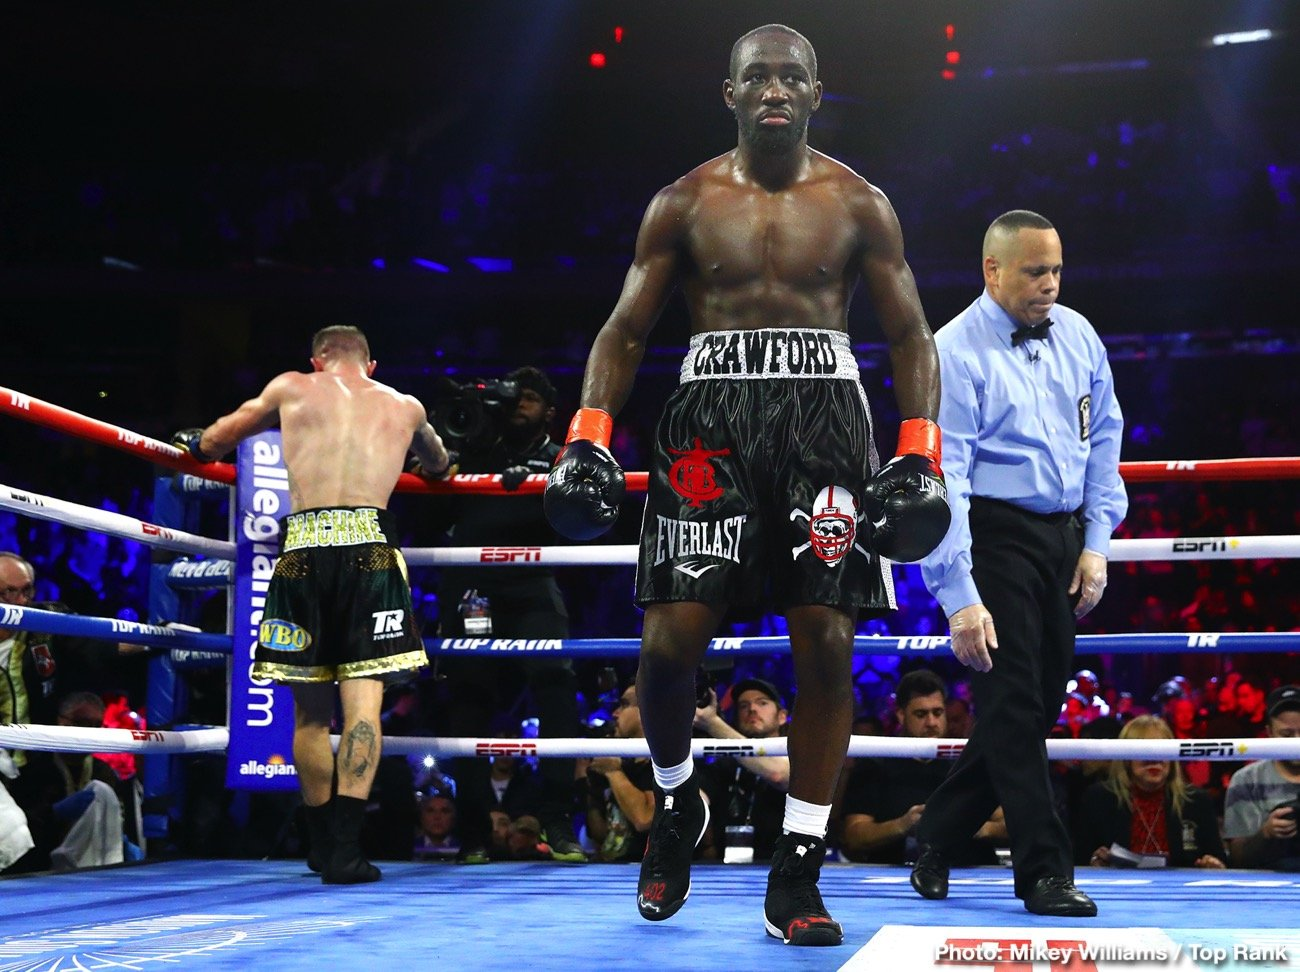 """Michael Conlan - Egidijus """"Mean Machine"""" Kavaliauskas was game, but pound-for-pound king Terence """"Bud"""" Crawford was too much."""